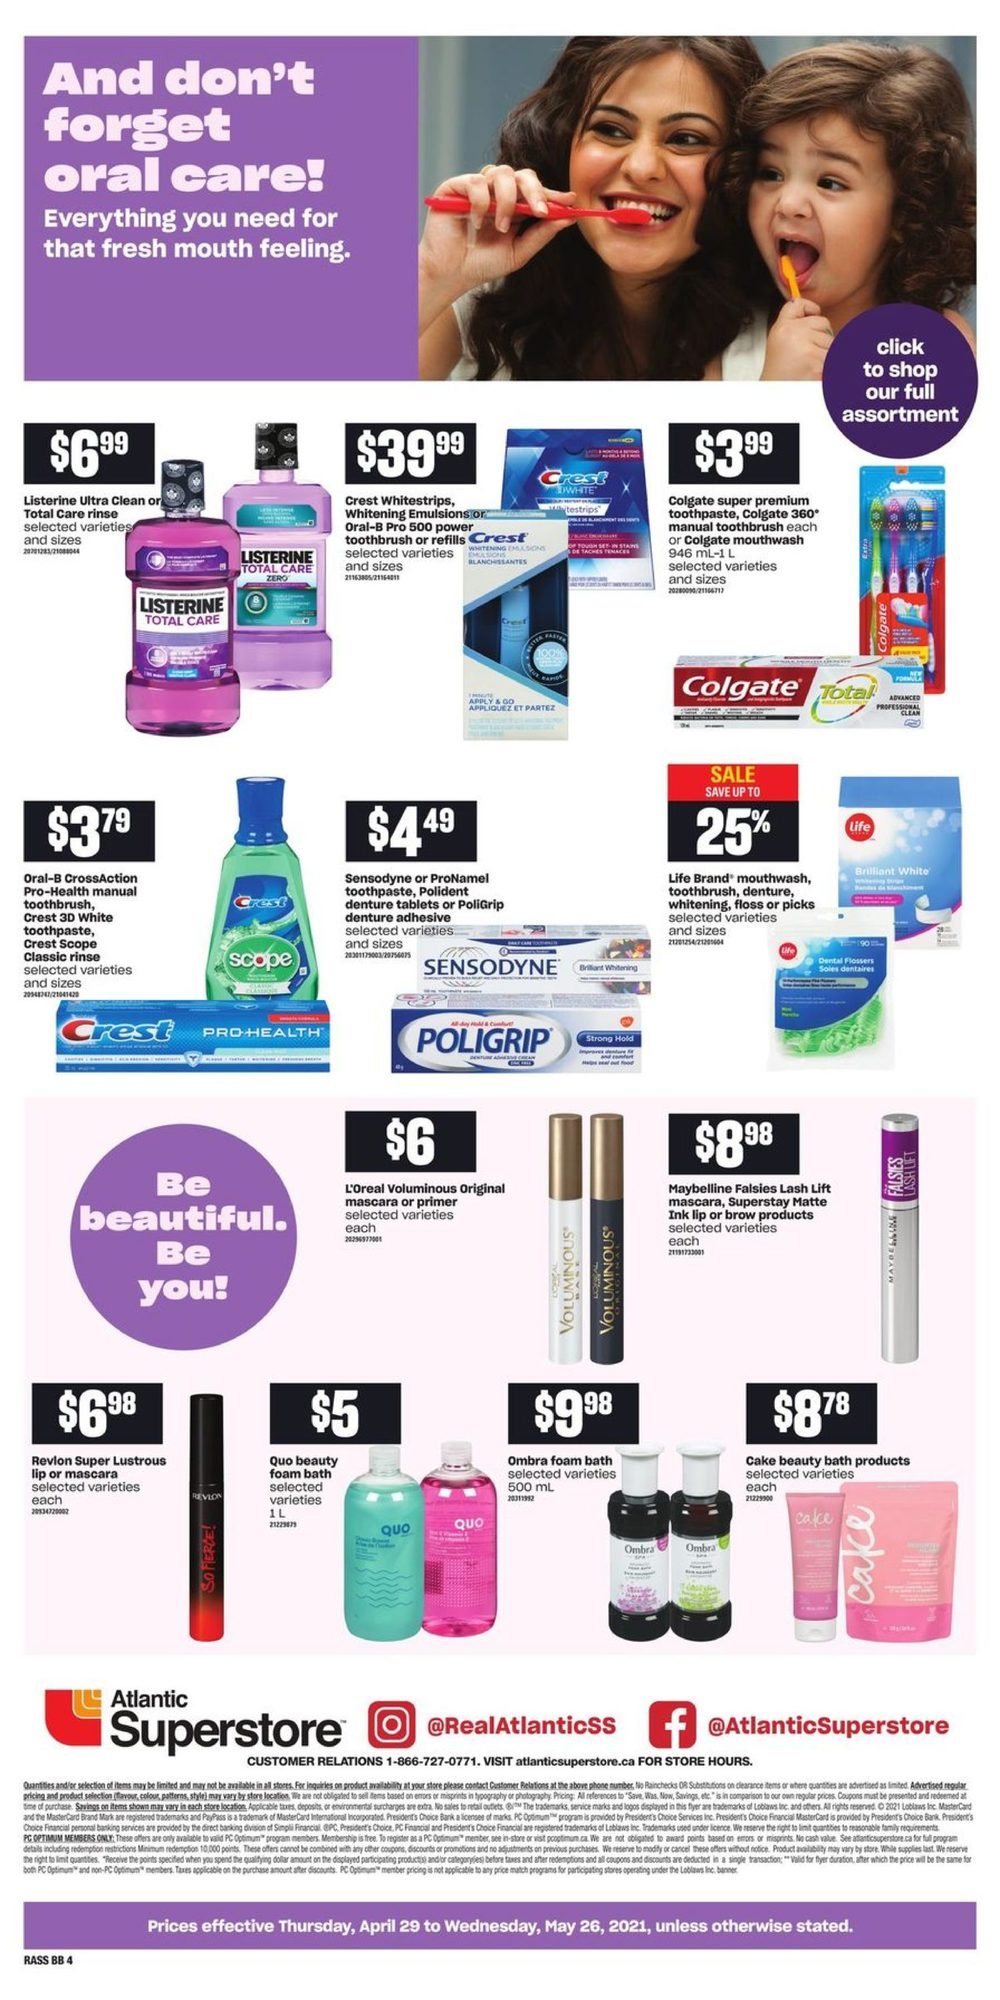 Atlantic Superstore - Beauty Book - Pamper Yourself! - Page 4